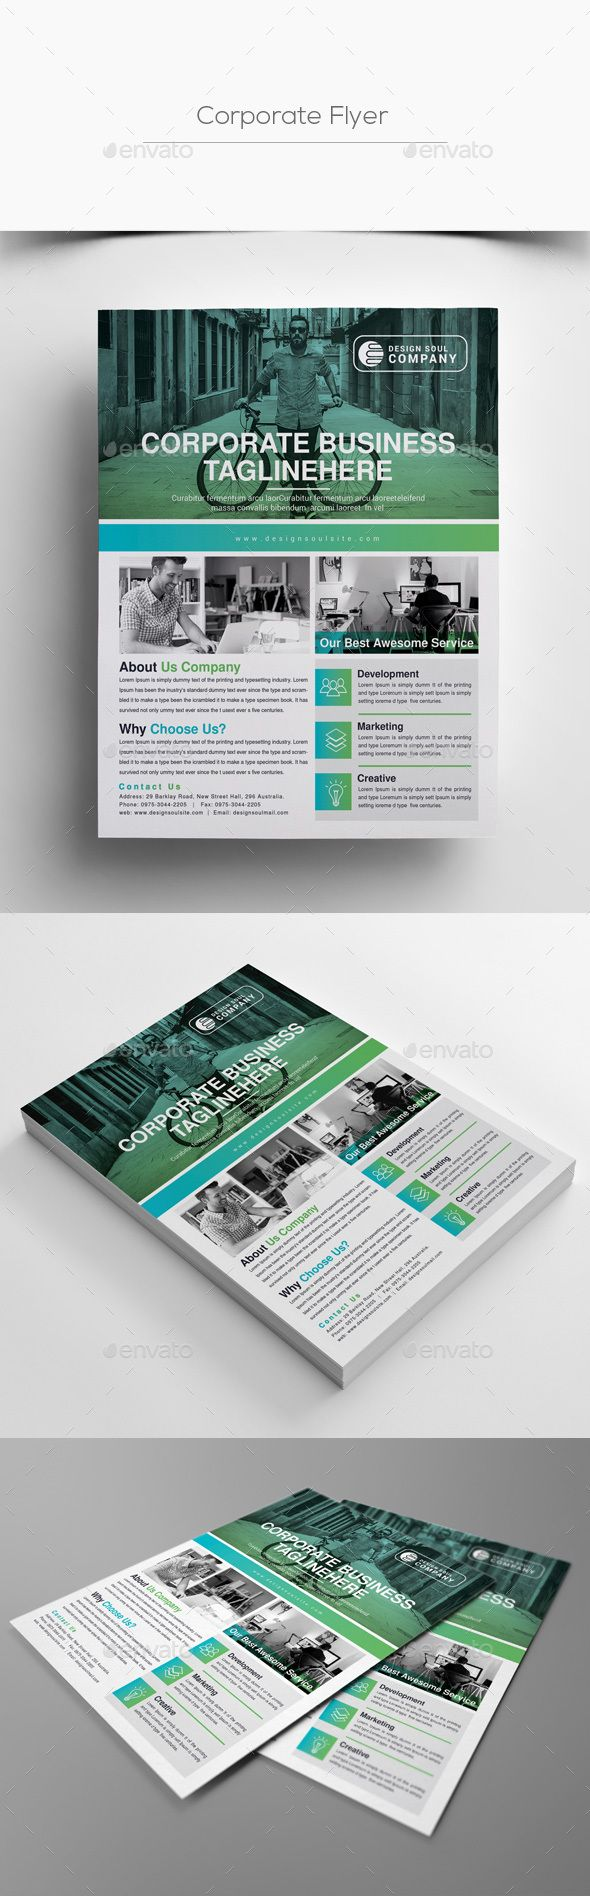 #Corporate #Flyer - Corporate Flyers Download here: https://graphicriver.net/item/corporate-flyer/20175630?ref=alena994